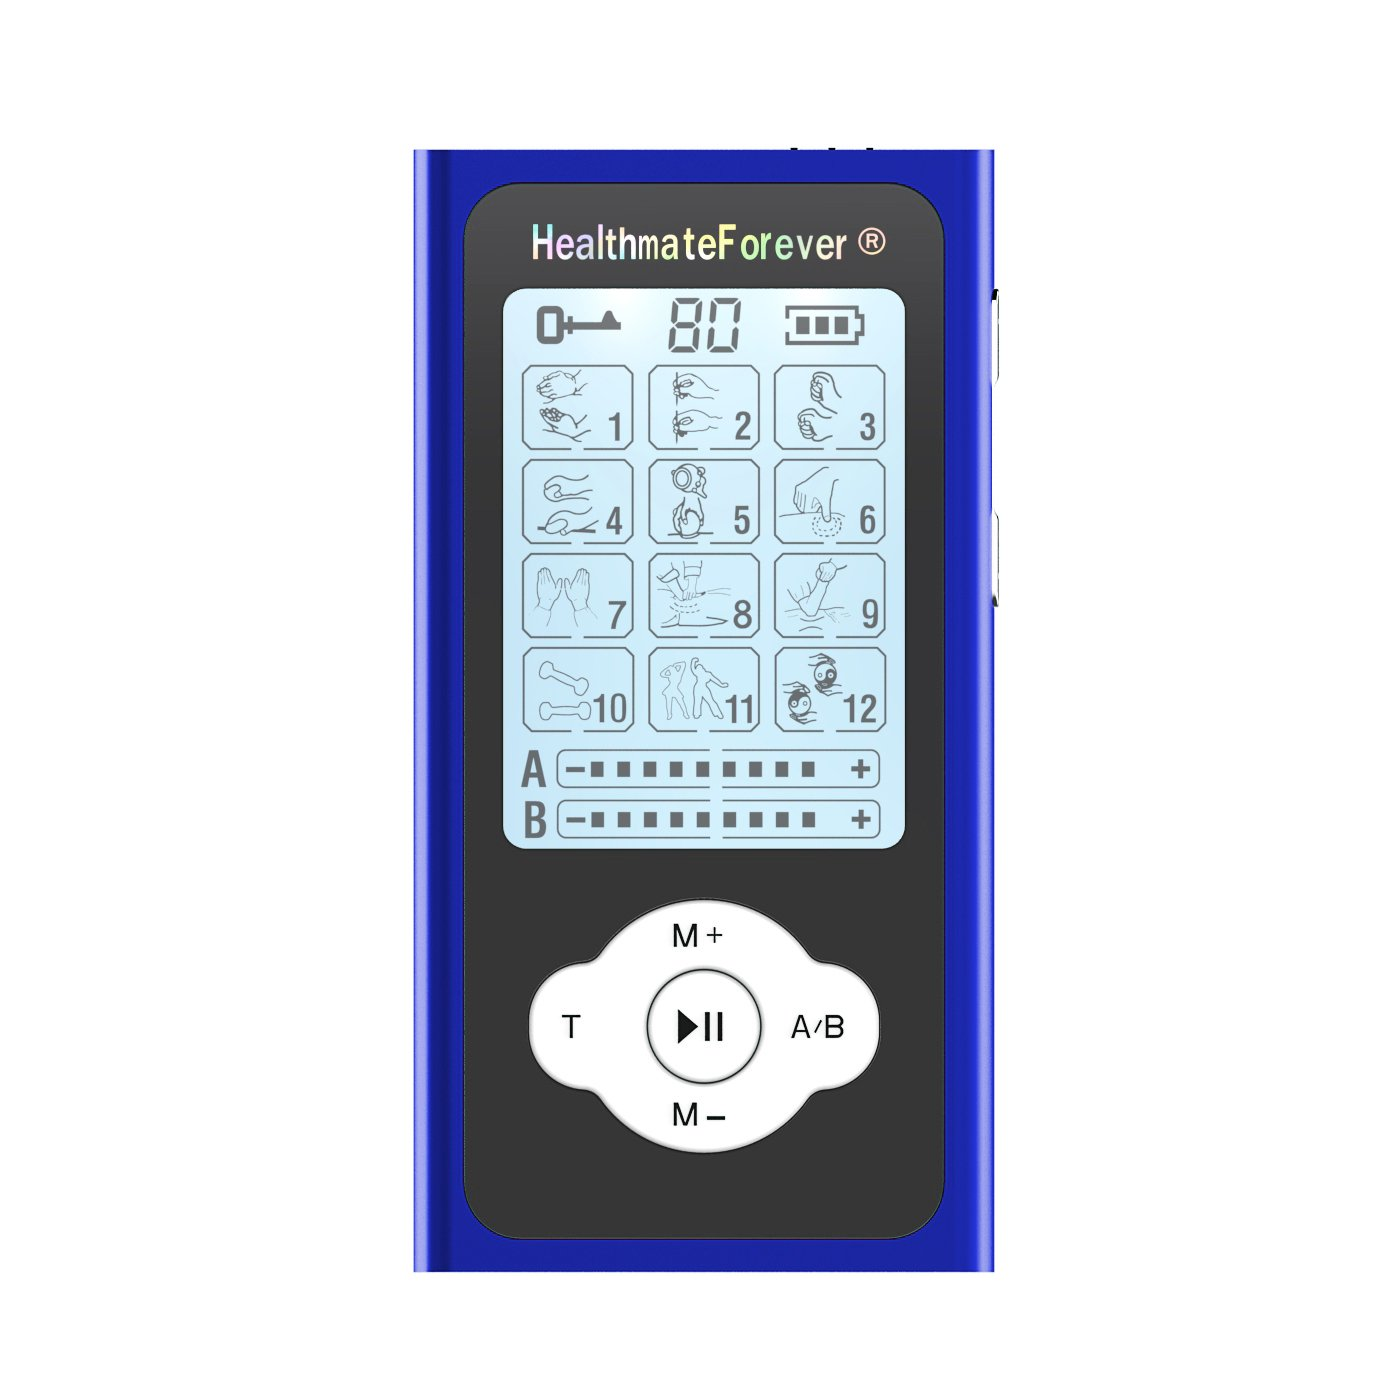 PRO12ABQ HealthmateForever TENS Unit Electrical Muscle Stimulator Blue + 2 Pairs of Pads